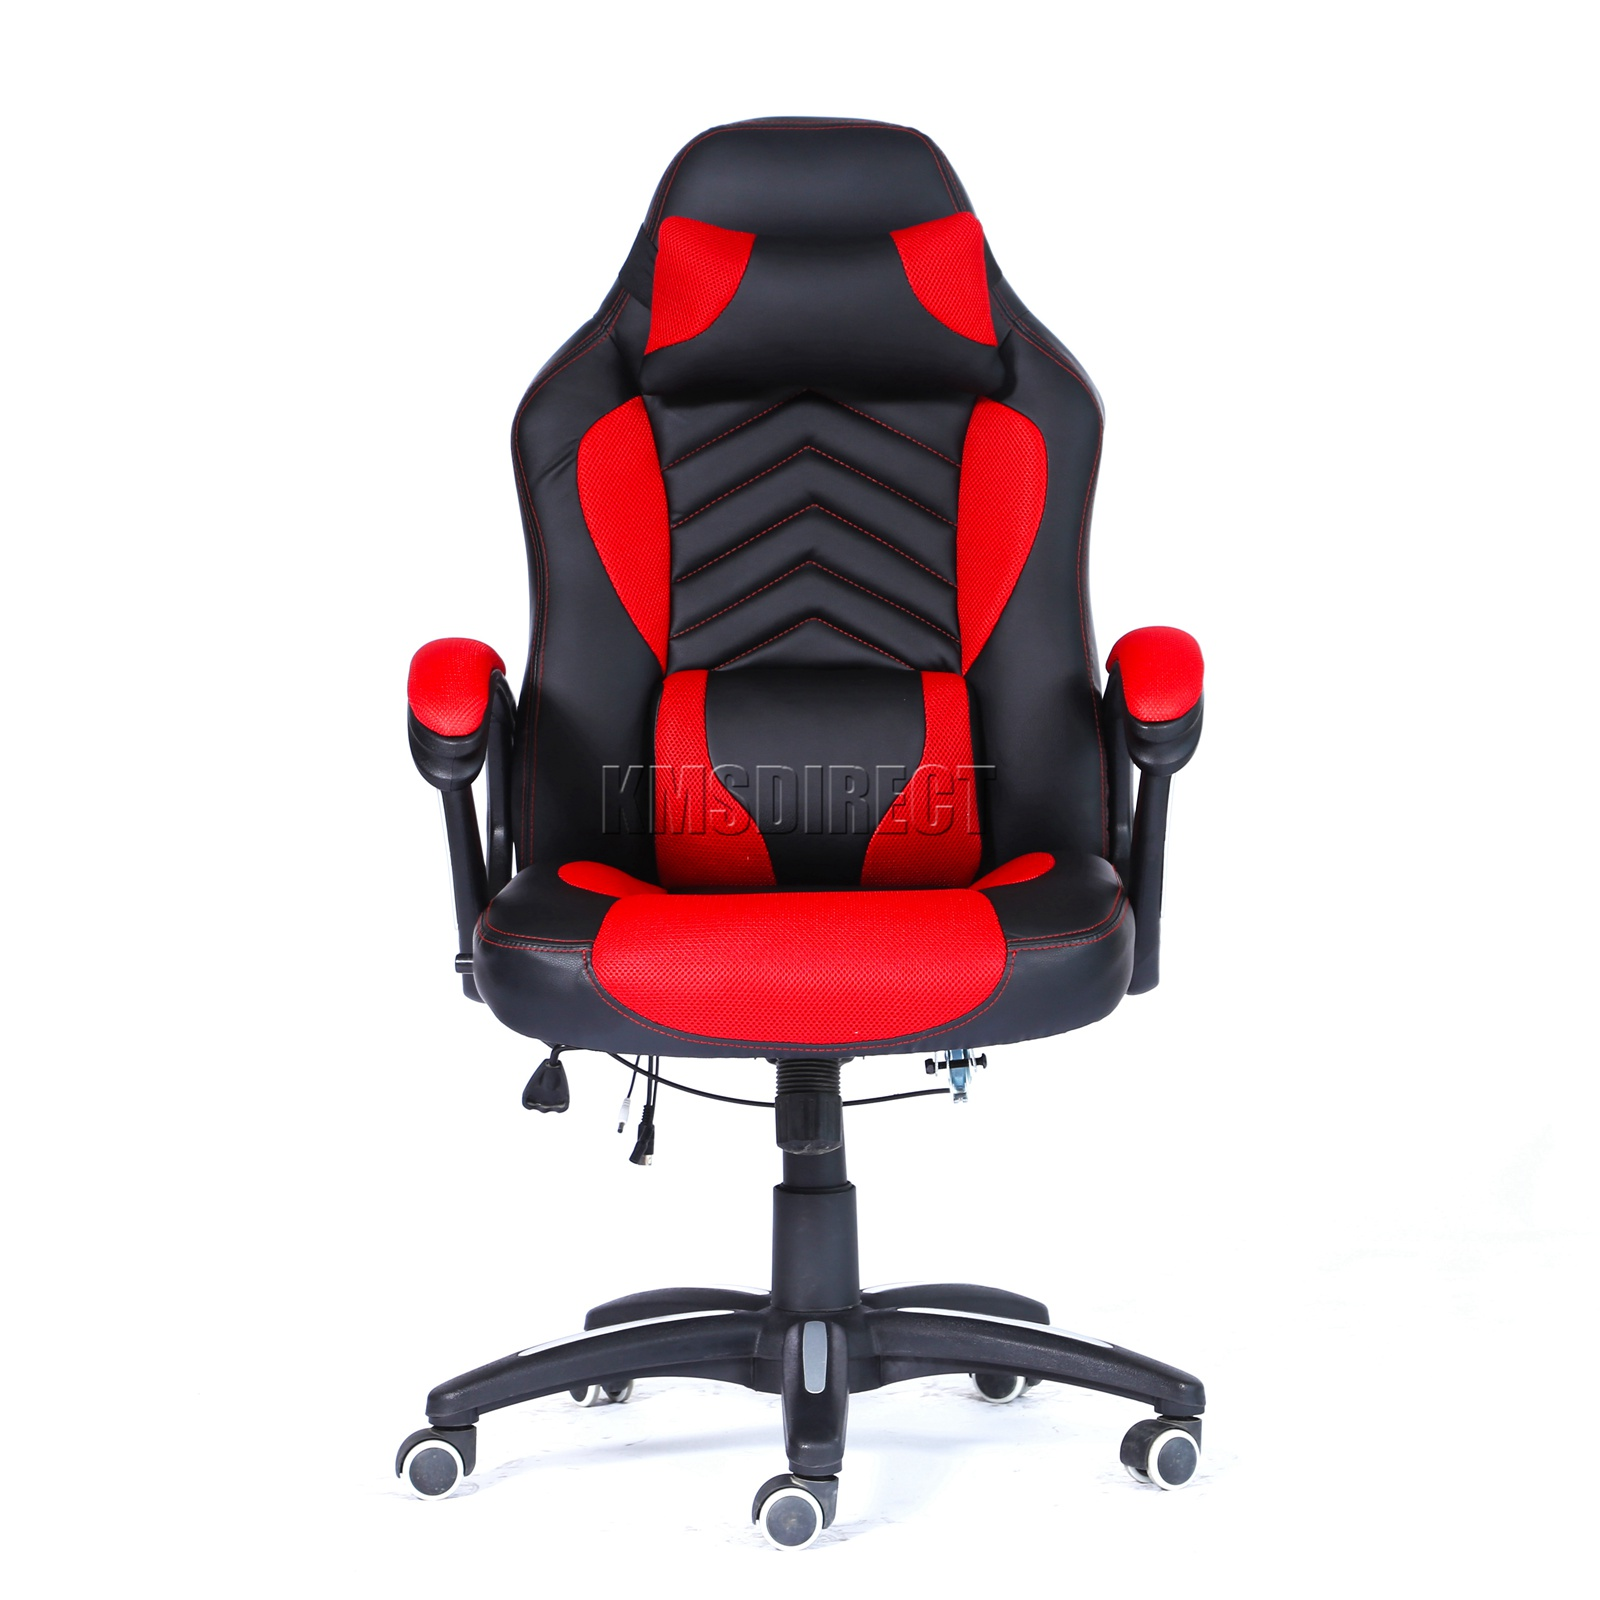 WestWood-Heated-Massage-Office-Chair-Gaming-amp-Computer-Recliner-Swivel-MC09 thumbnail 32